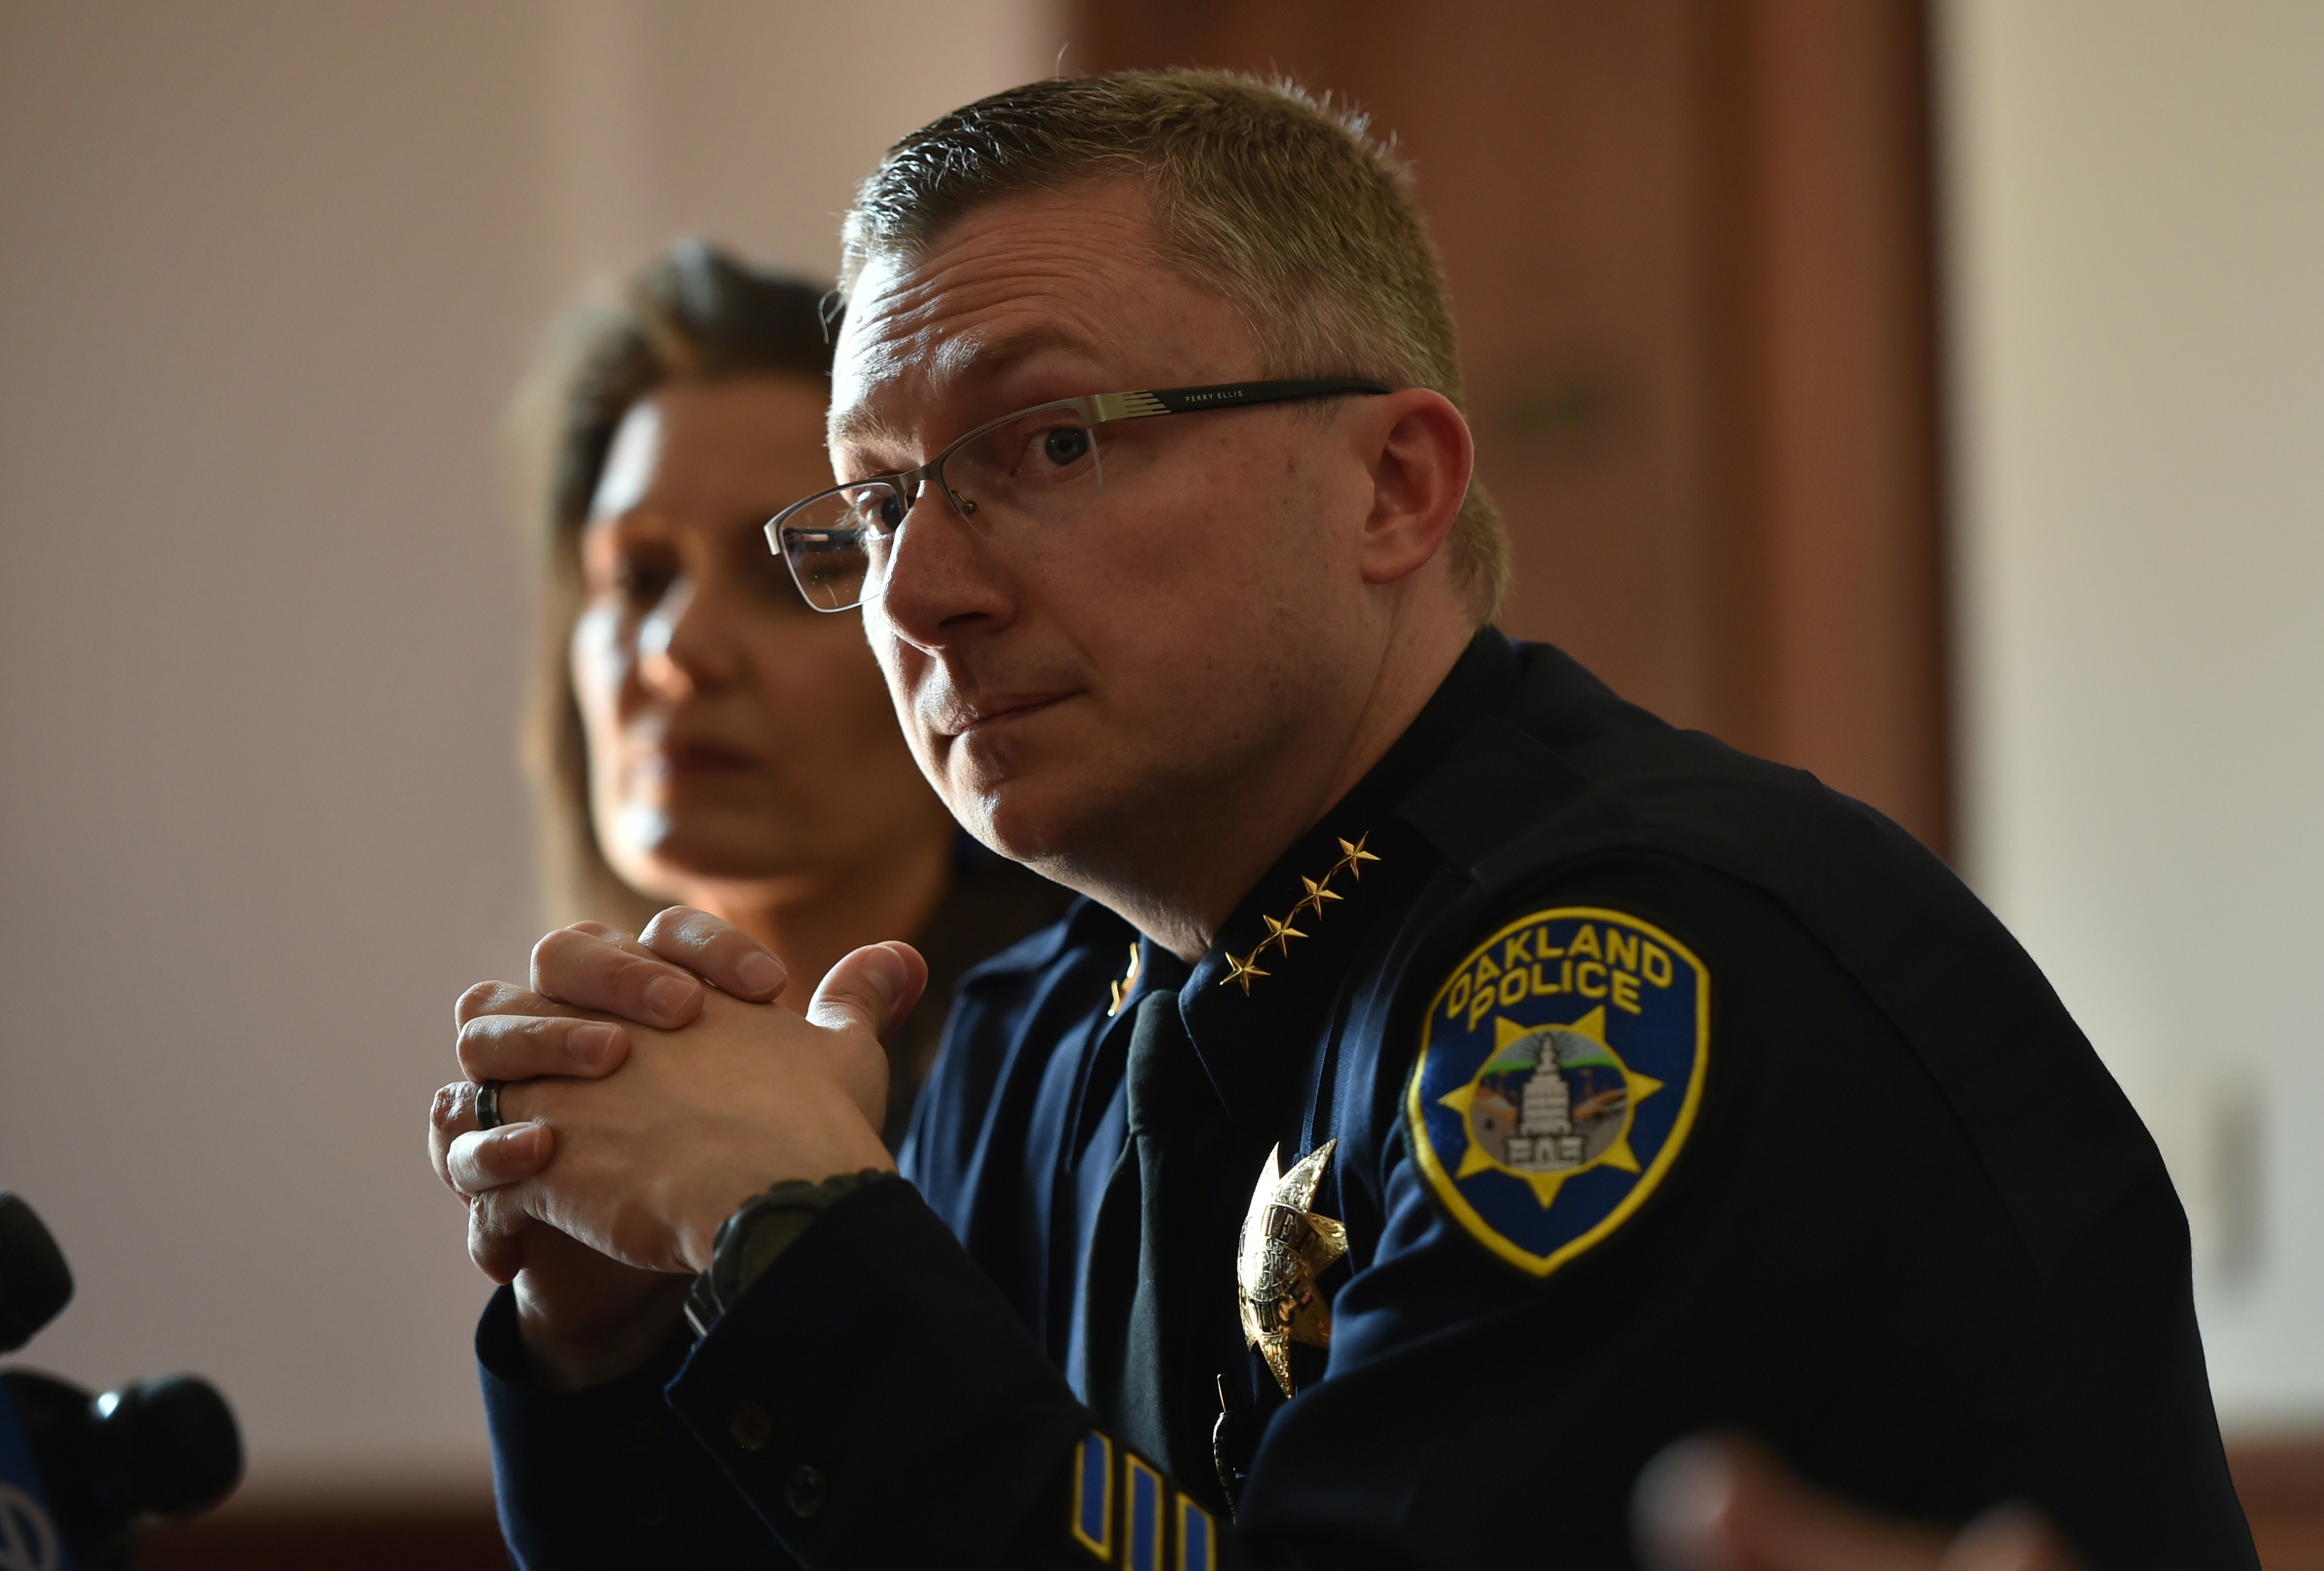 Oakland Police Chief Sean Whent, with Mayor Libby Schaaf behind him, listens to questions from the media on May 2, 2015, after May Day protests in Oakland, Calif. Whent has since resigned as police chief — as did two interim chiefs after him, over the course of a little more than a week. Josh Edelson/AFP/Getty Images